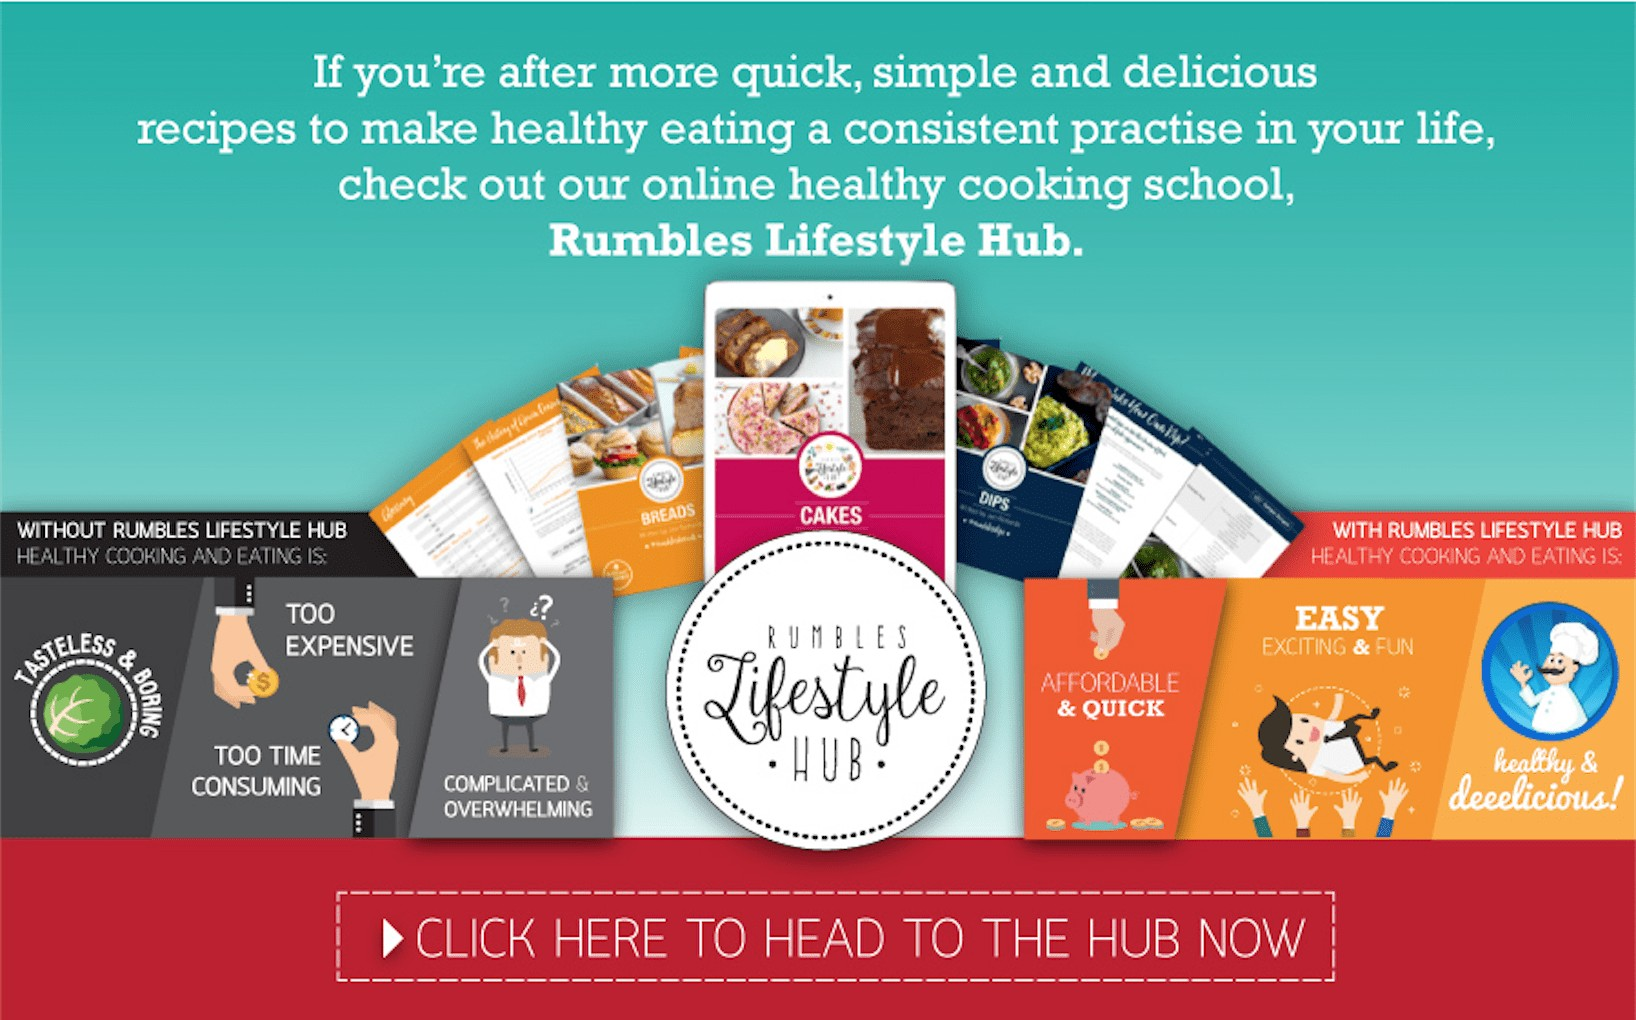 rumbles paleo lifestyle hub healthy recipes gluten free